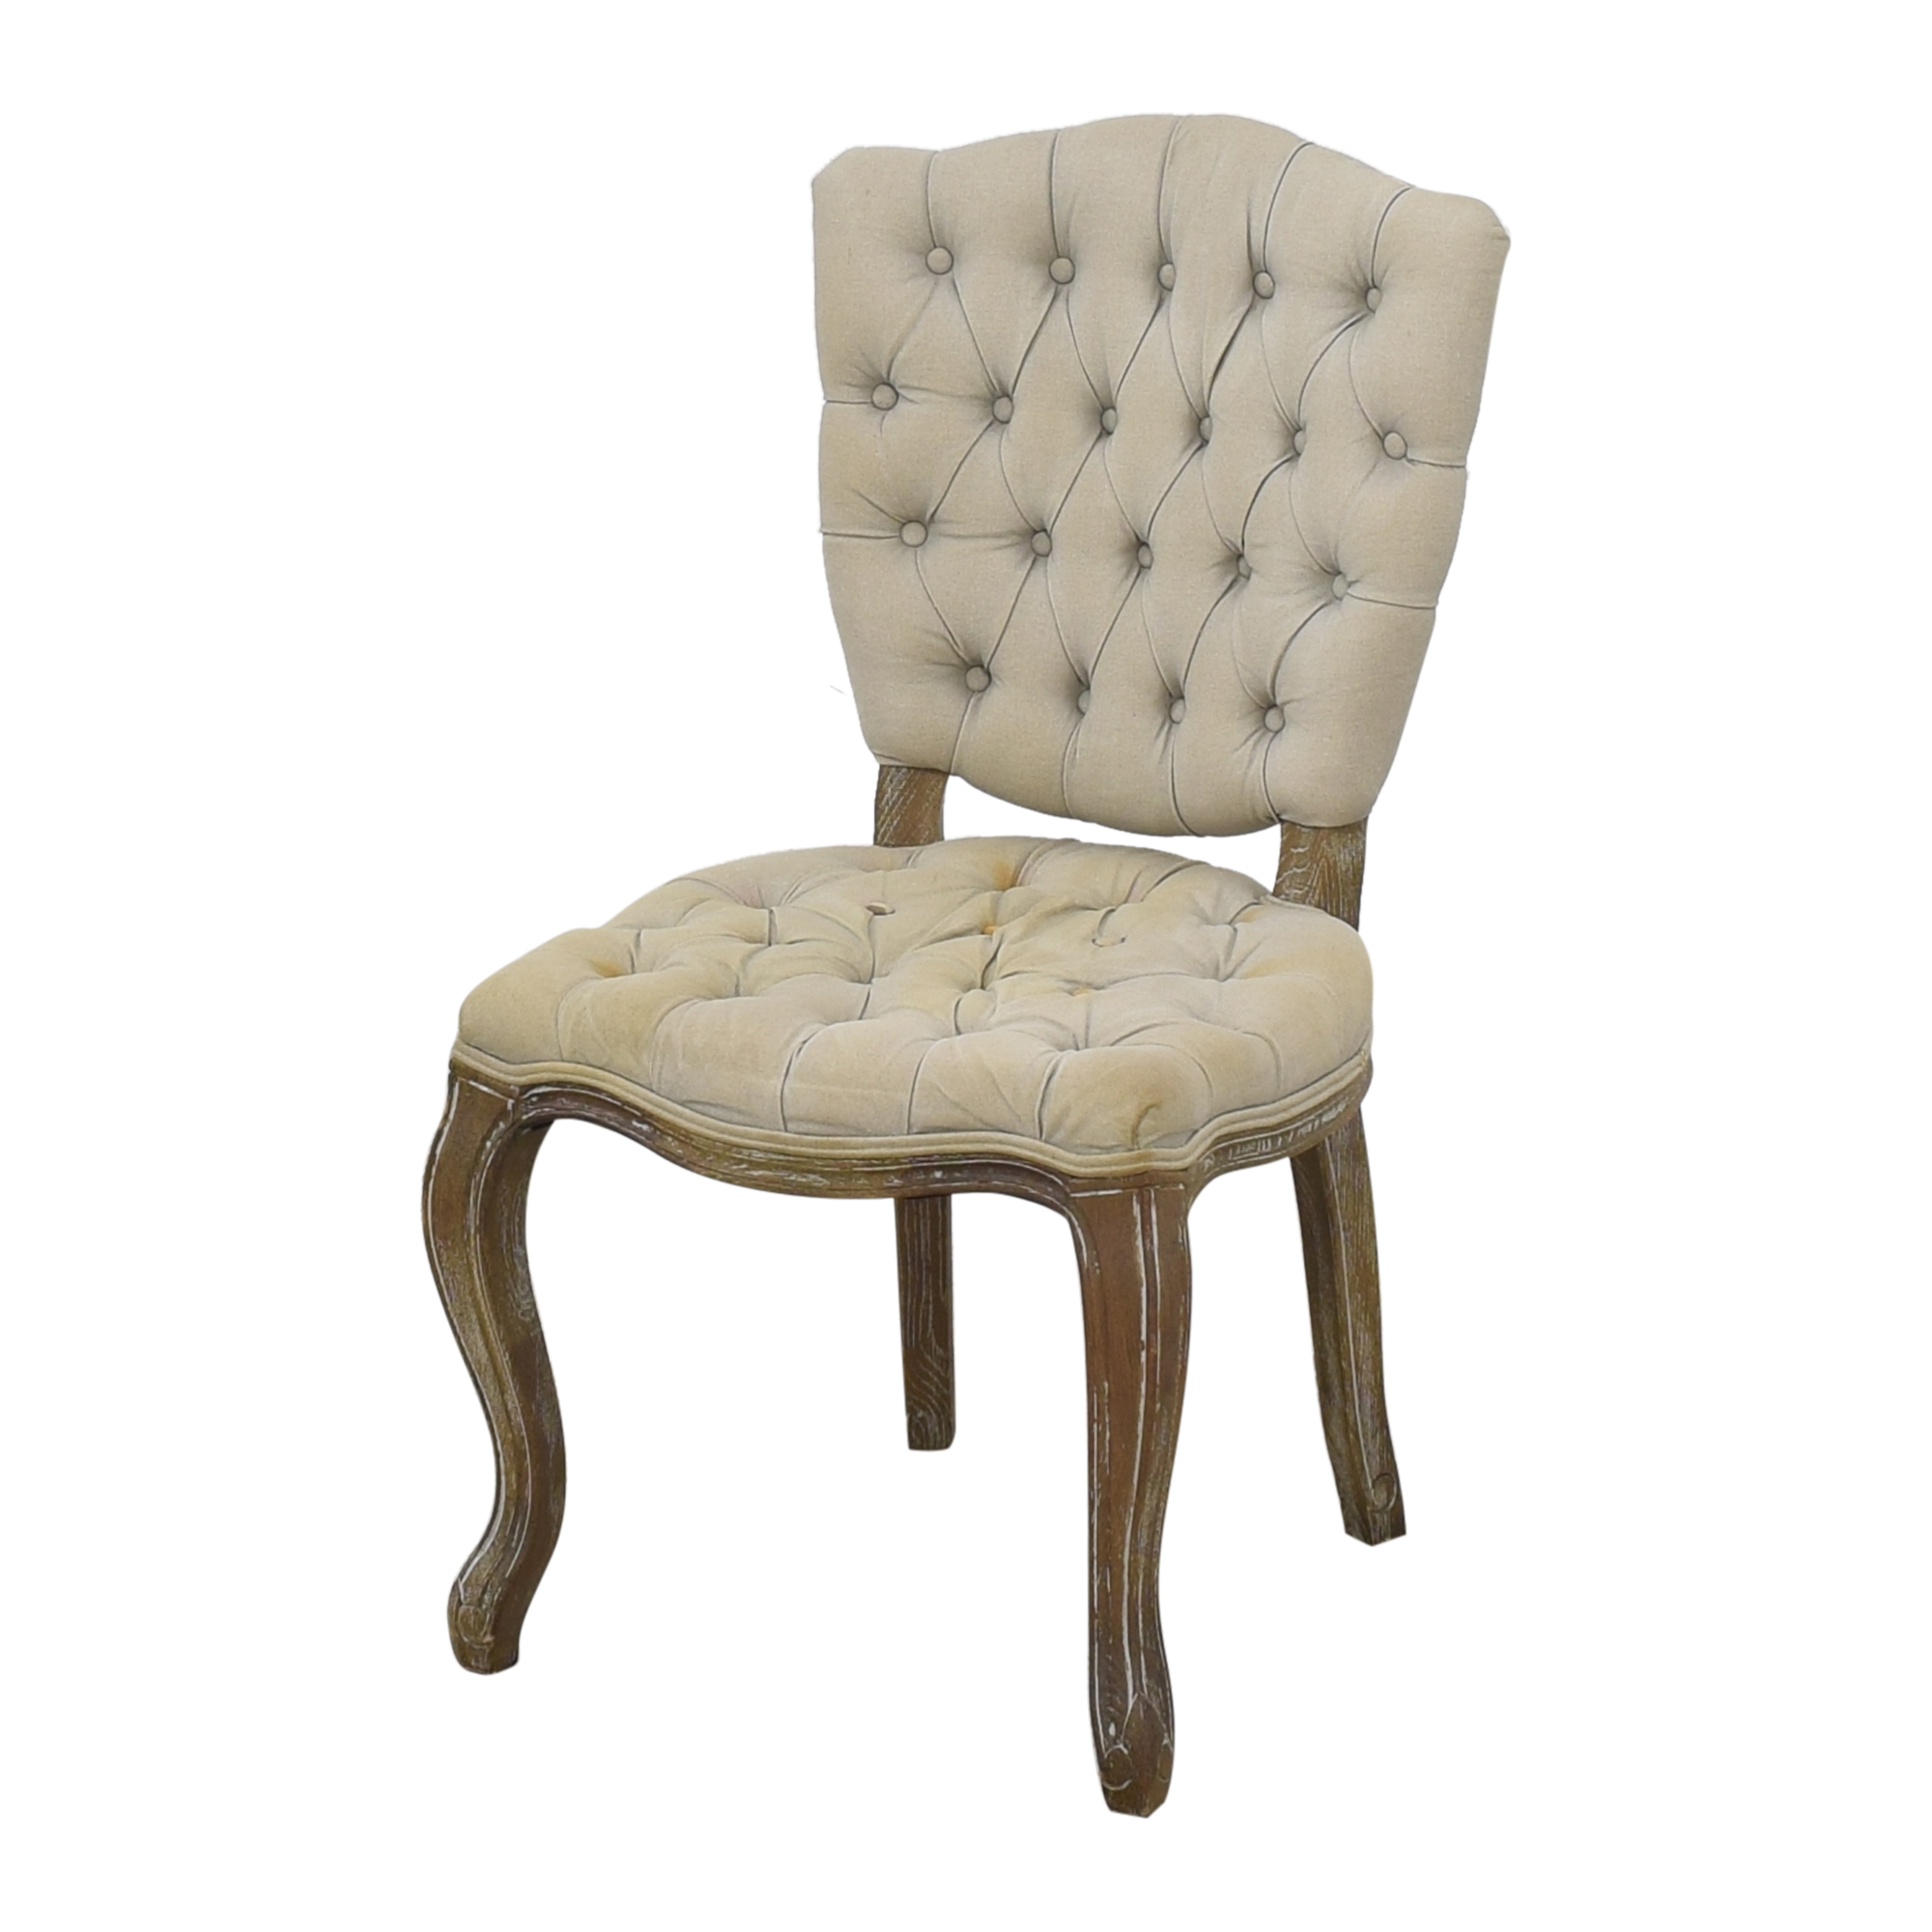 buy Arhaus Country French Tufted Dining Chairs Arhaus Dining Chairs